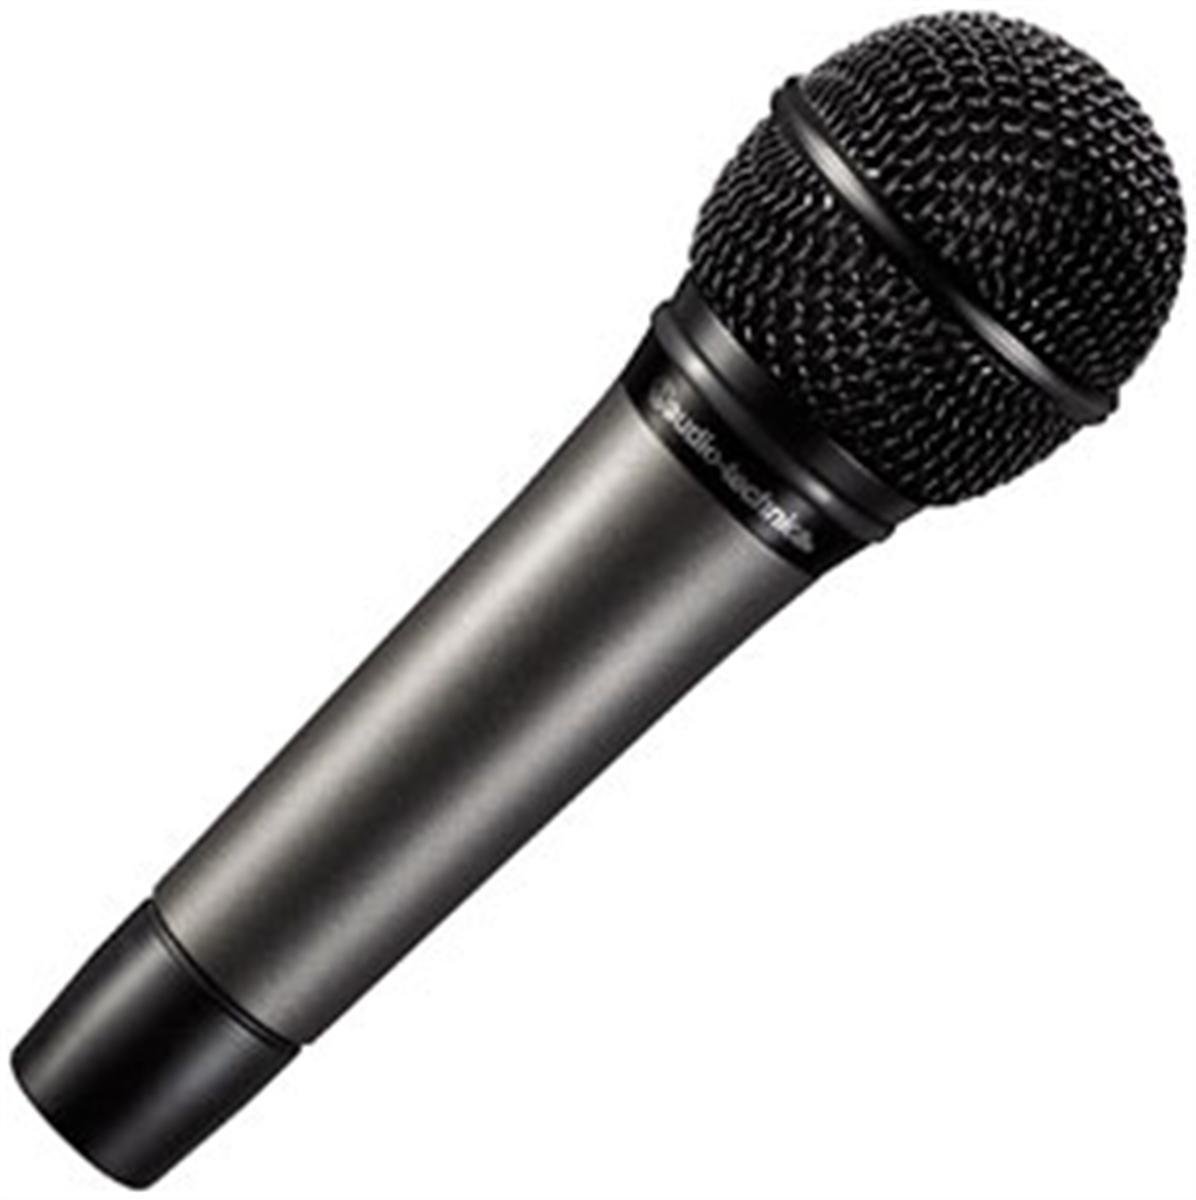 Clipart microphones svg free stock Best Microphone Clipart #12790 - Clipartion.com svg free stock